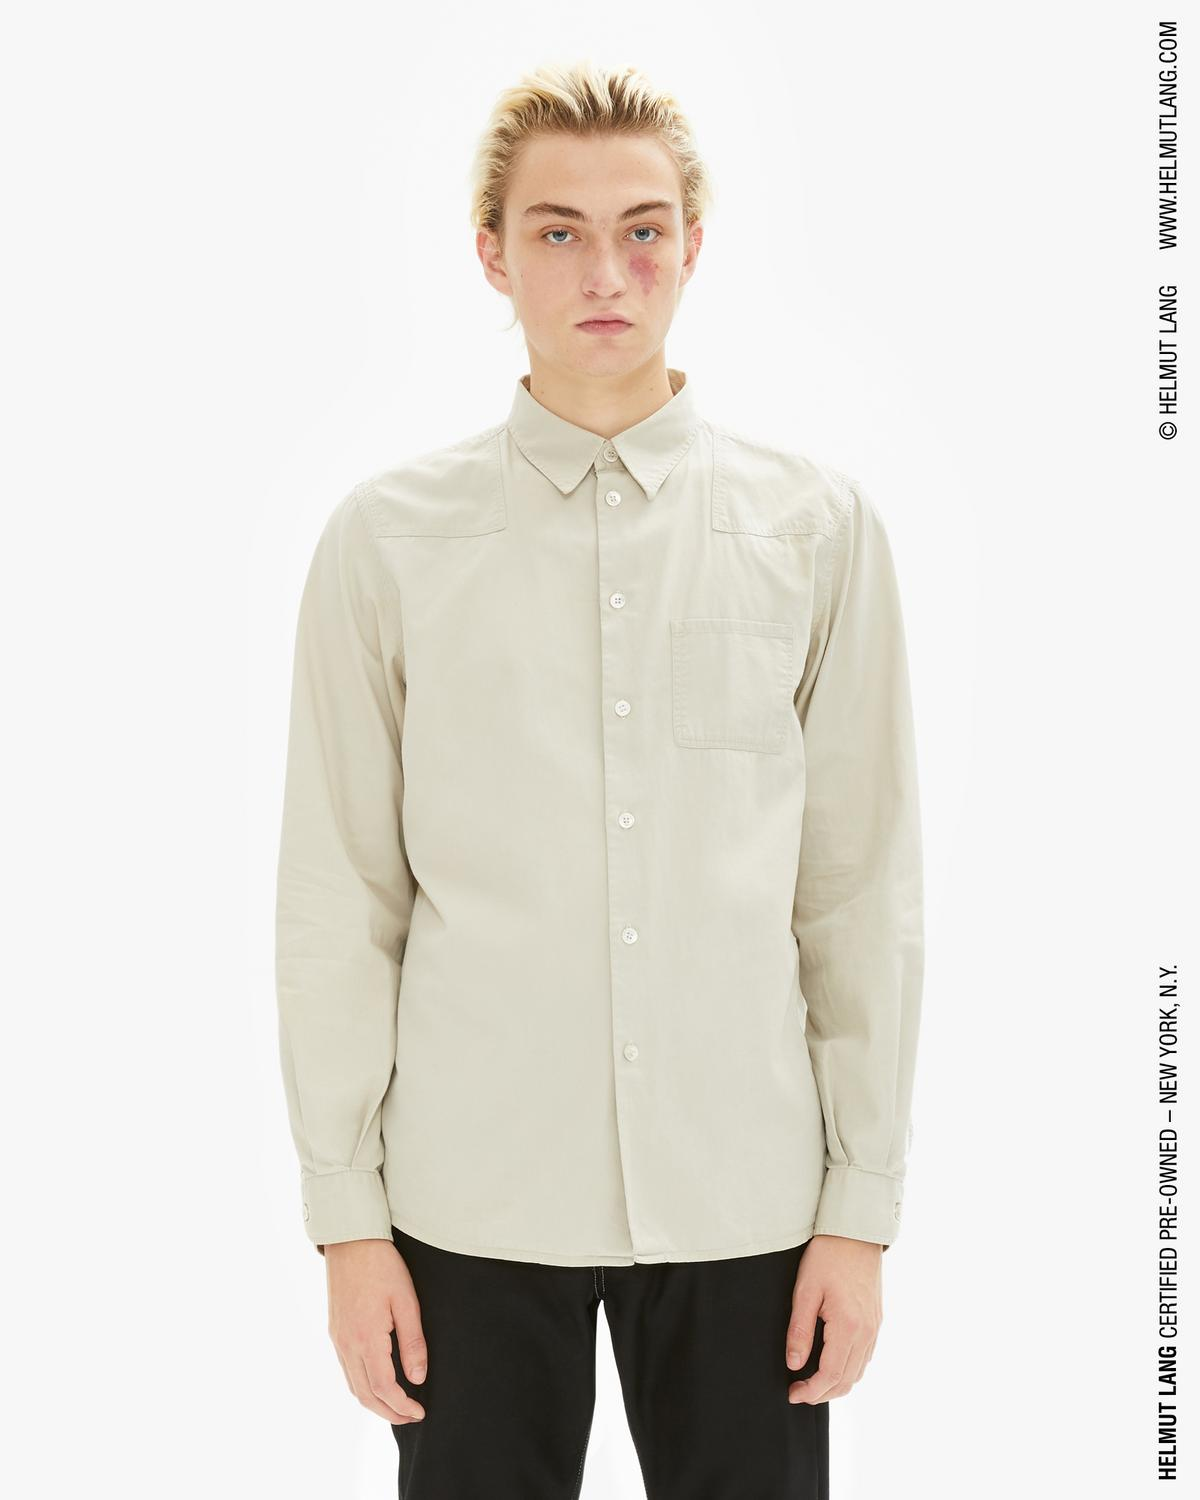 Workwear Shirt with Patches